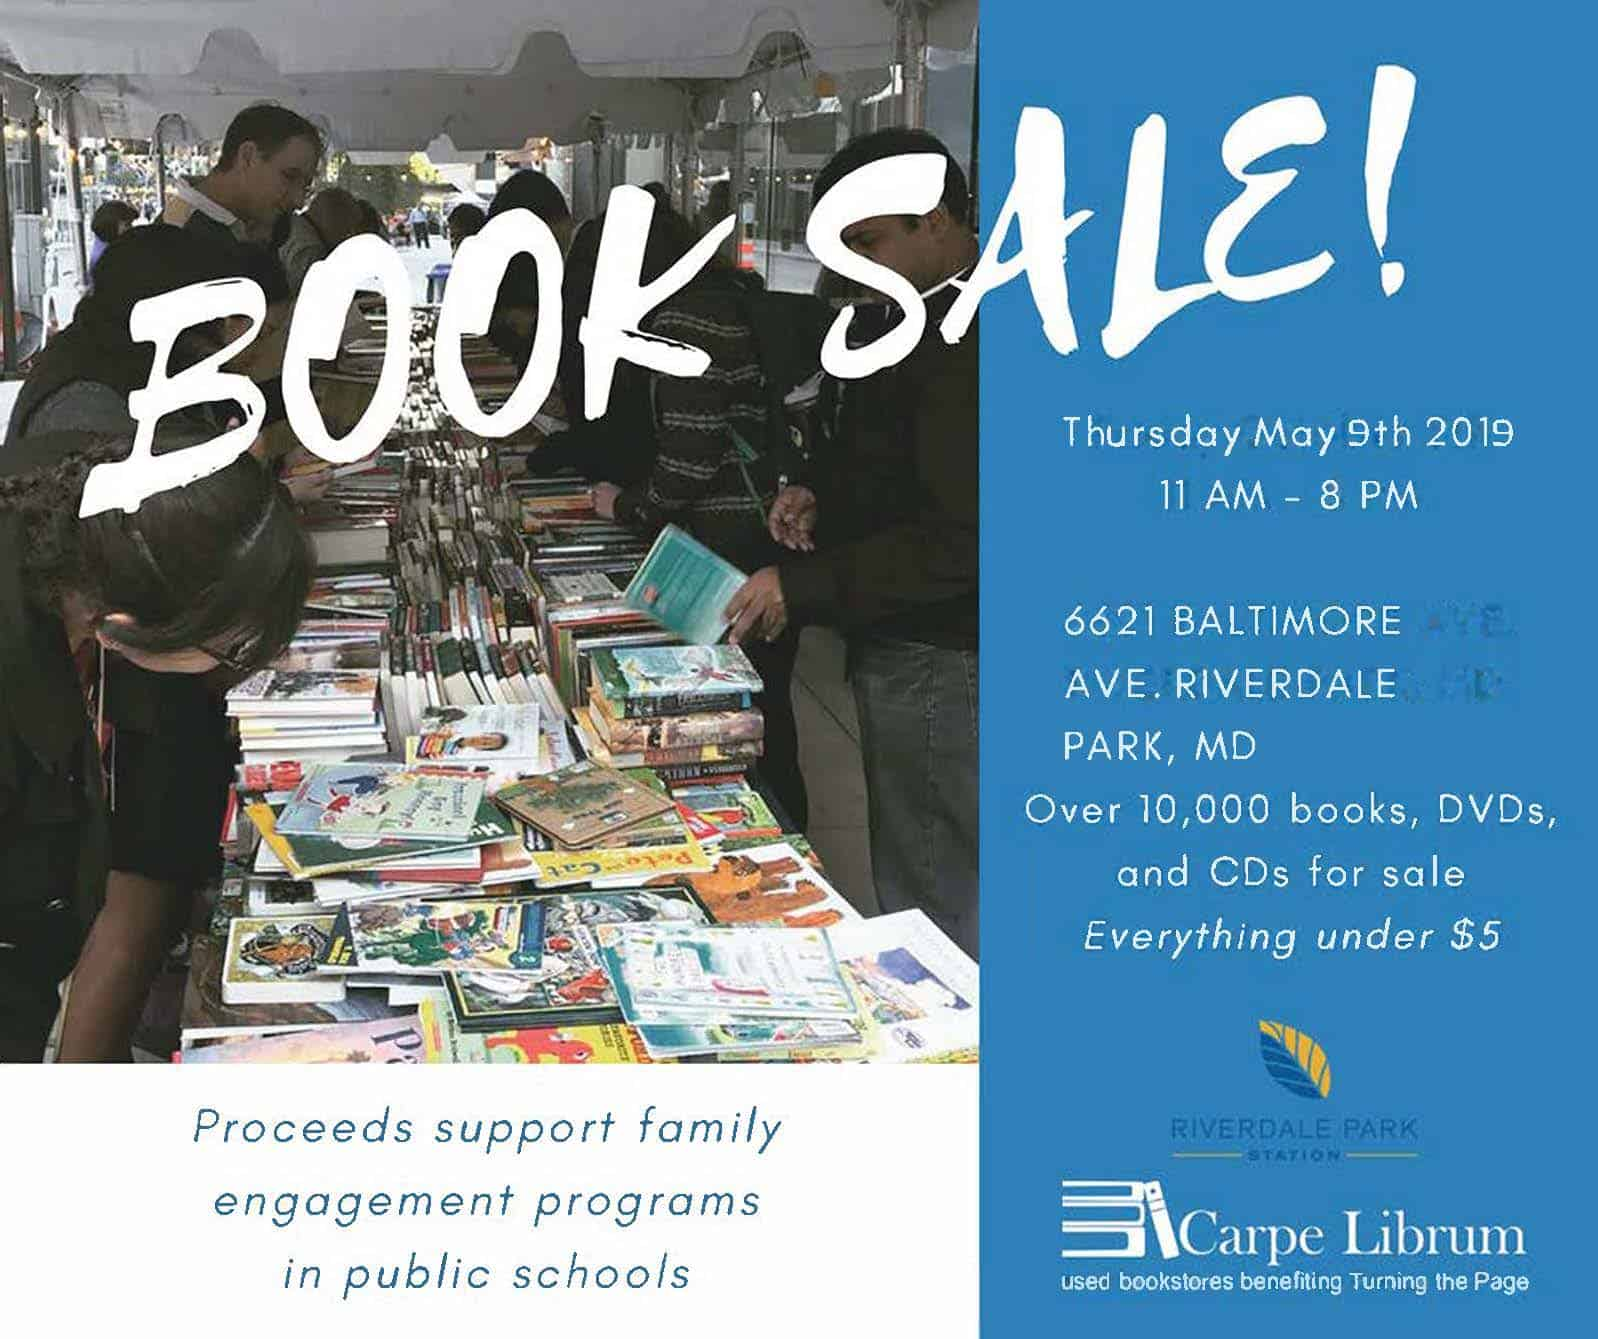 Turning the Page Book Sale at Riverdale Park Station